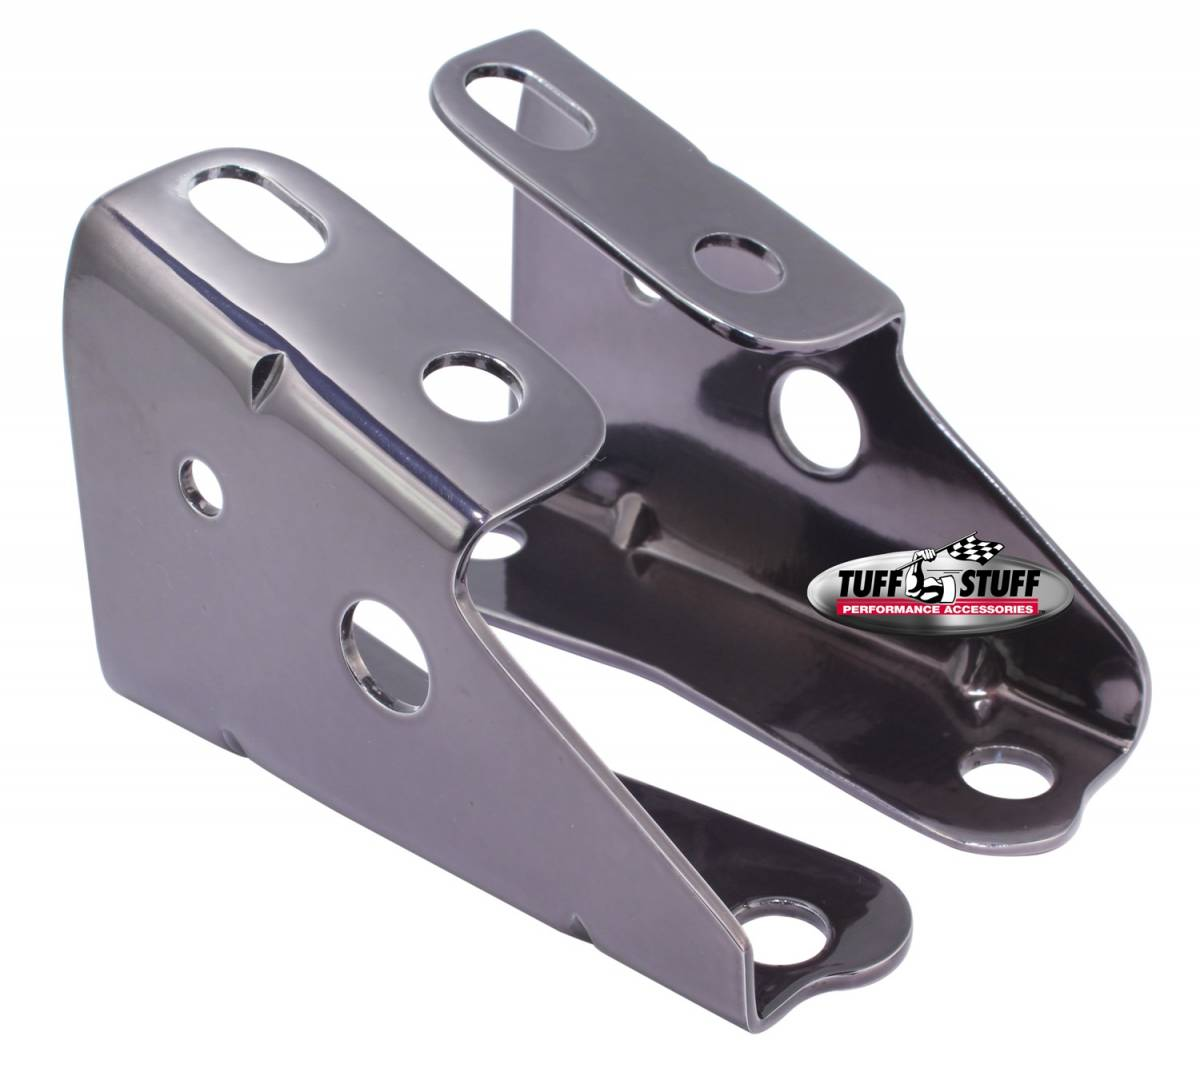 Tuff Stuff Performance - Brake Booster Brackets Incl. Left And Right Side 1967-1972 GM For Brake Booster PN[2121/2122/2123/2124/2129/2221/2222/2223/2224/2228/2229/2231] Black Chrome 4650A7